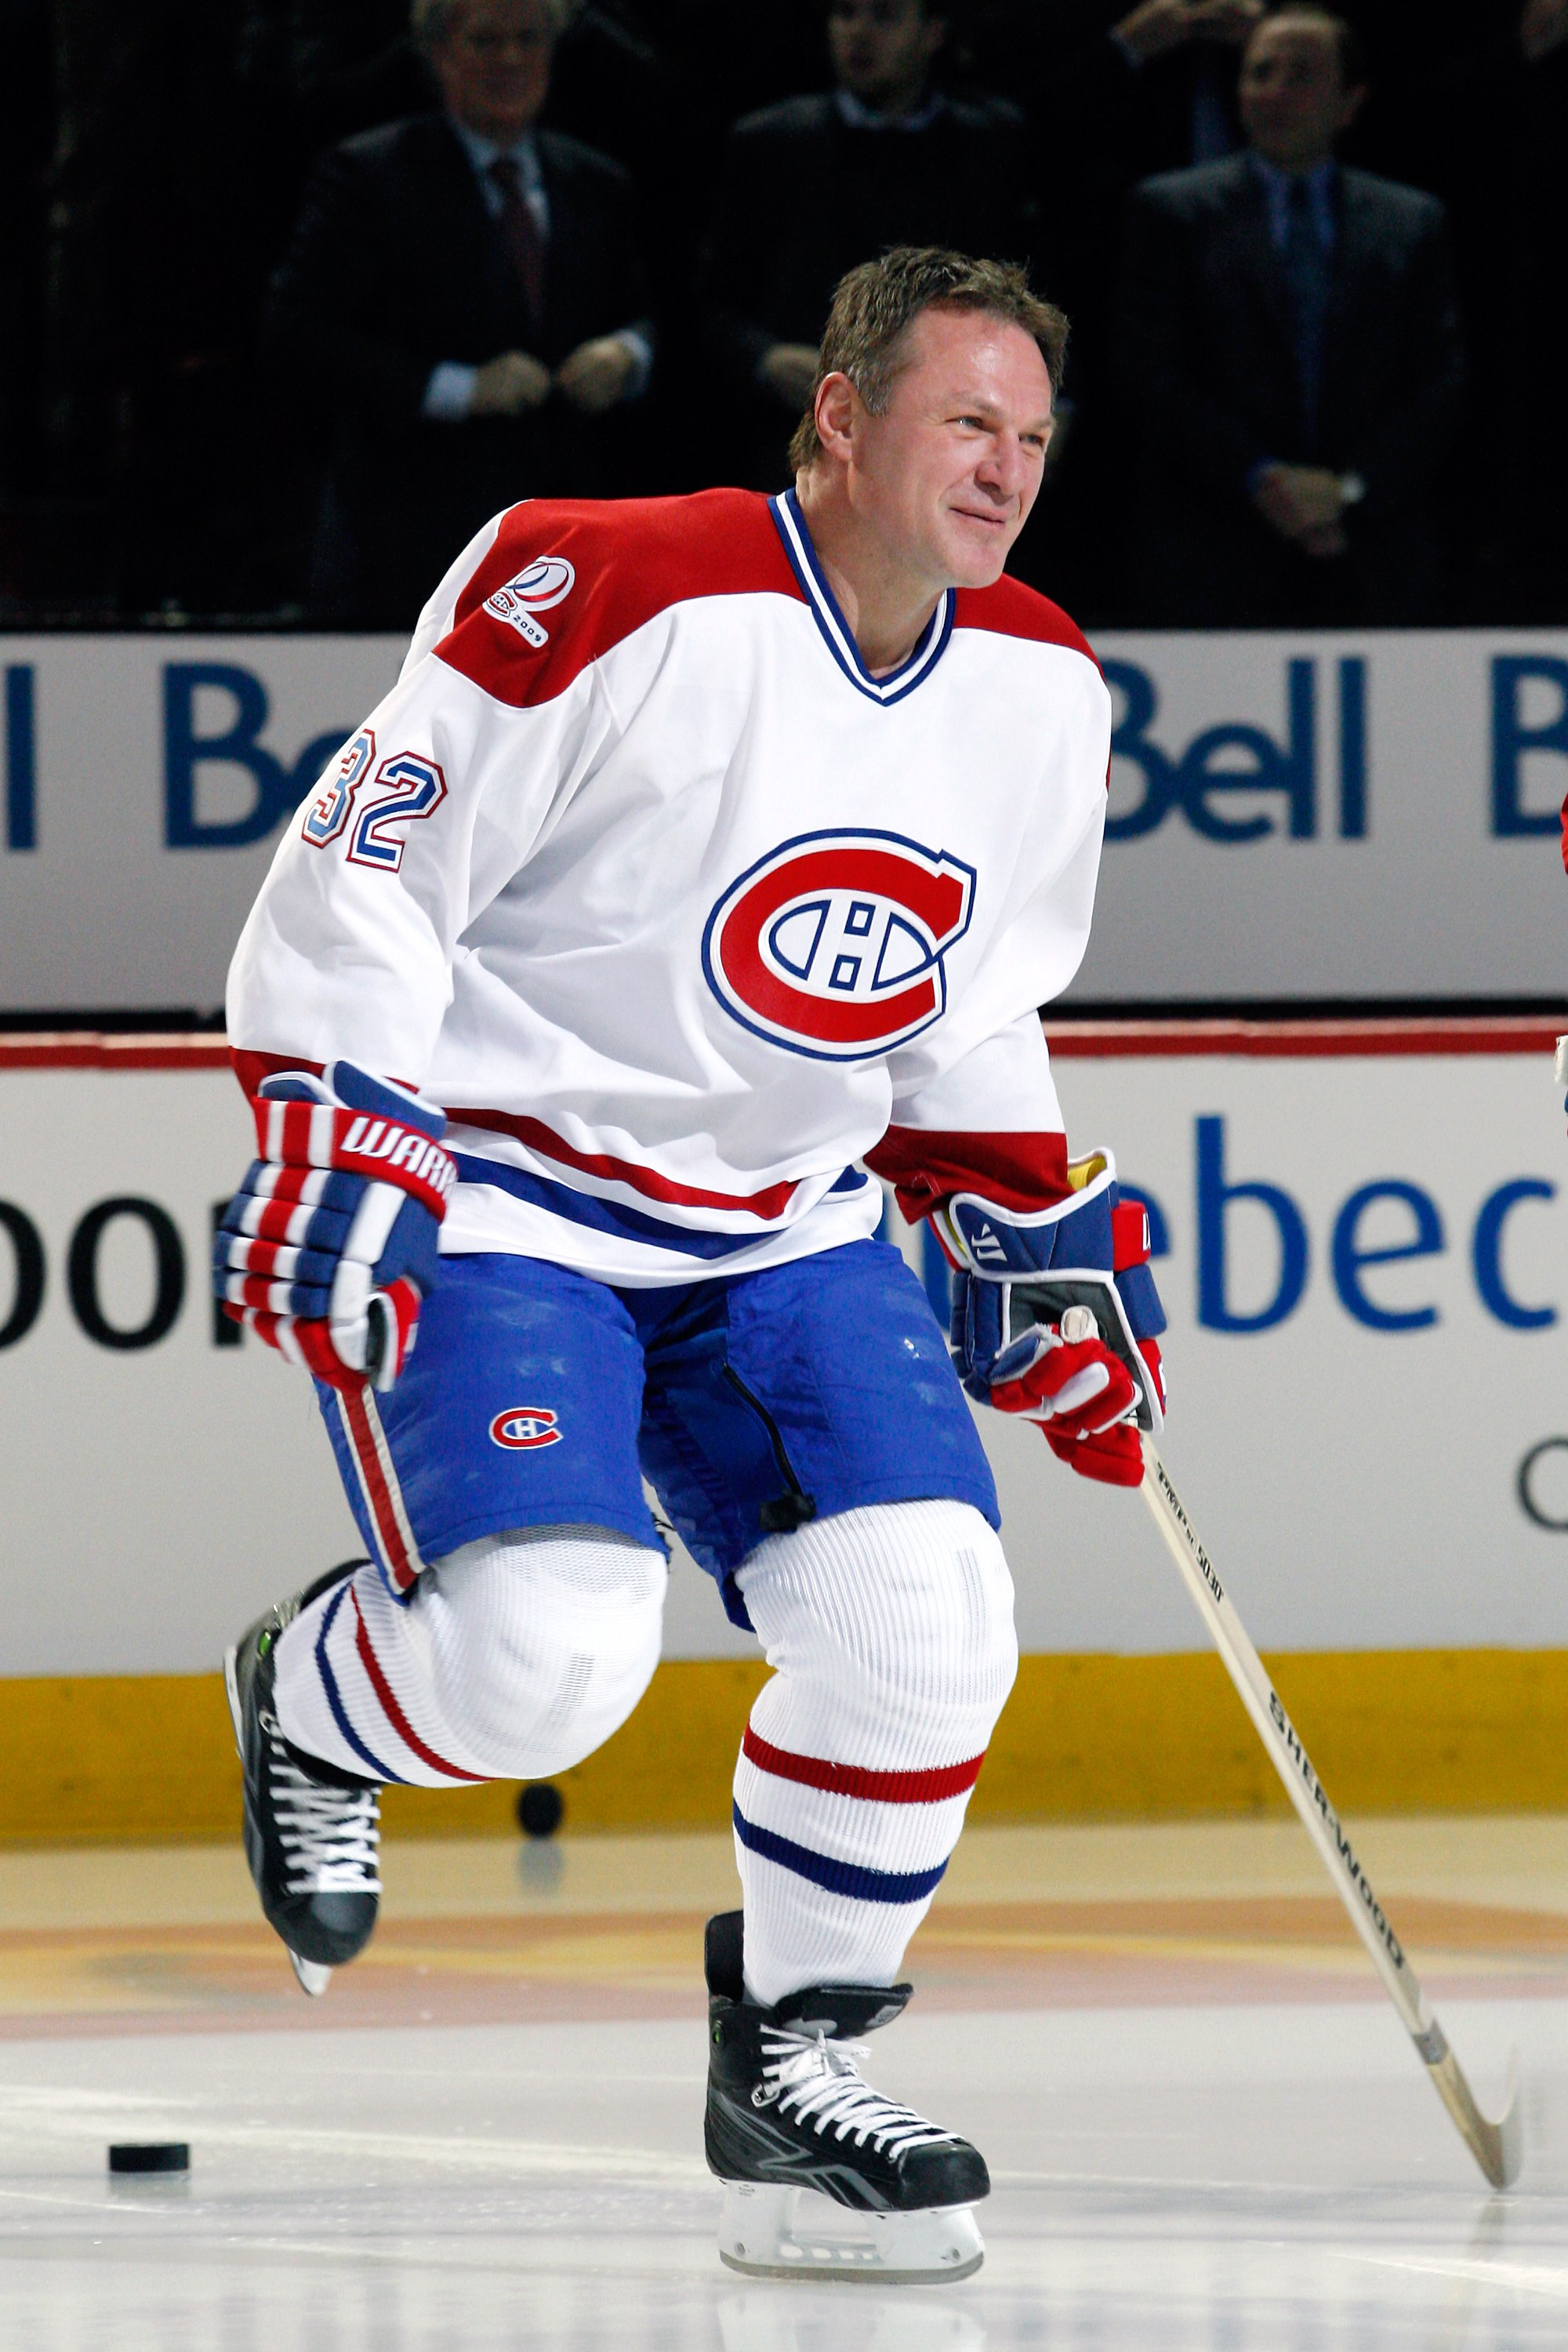 MONTREAL- DECEMBER 4:  Former Monreal Canadien Claude Lemieux skates during the Centennial Celebration ceremonies prior to the NHL game between the Montreal Canadiens and Boston Bruins on December 4, 2009 at the Bell Centre in Montreal, Quebec, Canada.  T